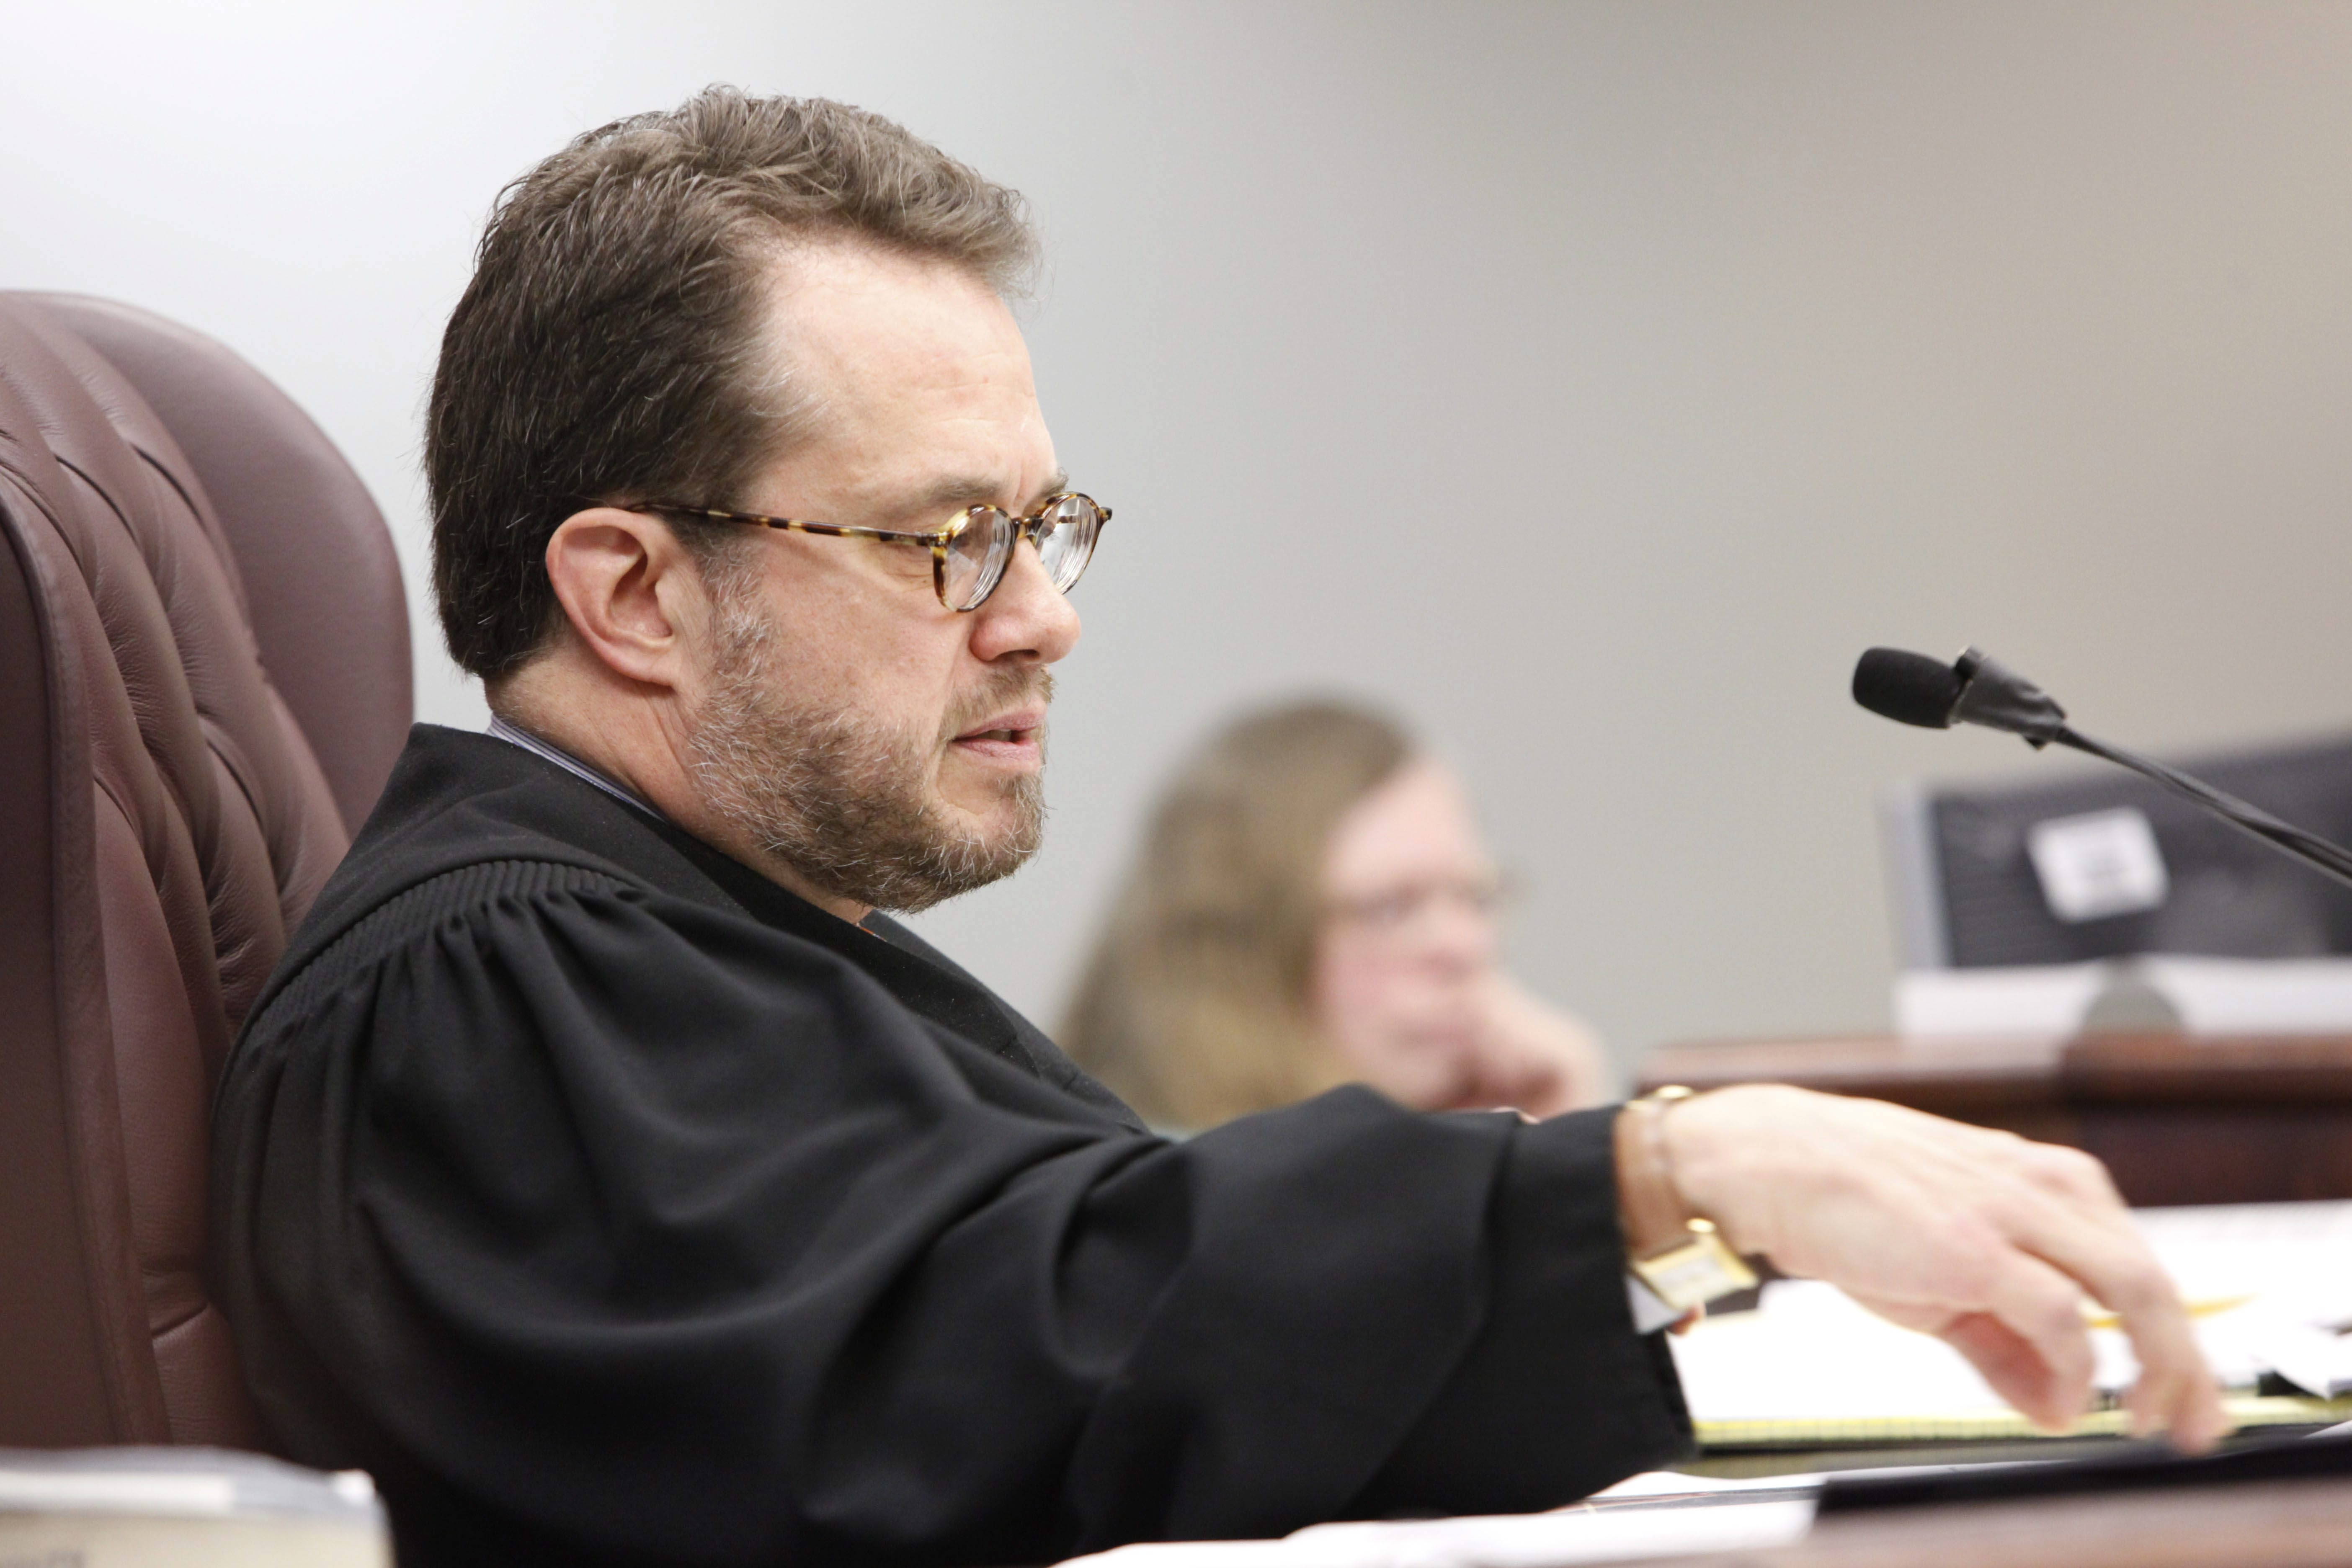 Erie County Judge Thomas Franczyk, shown presiding at a trial in a file photo,  has decided against running for district attorney. (Derek Gee/Buffalo News)